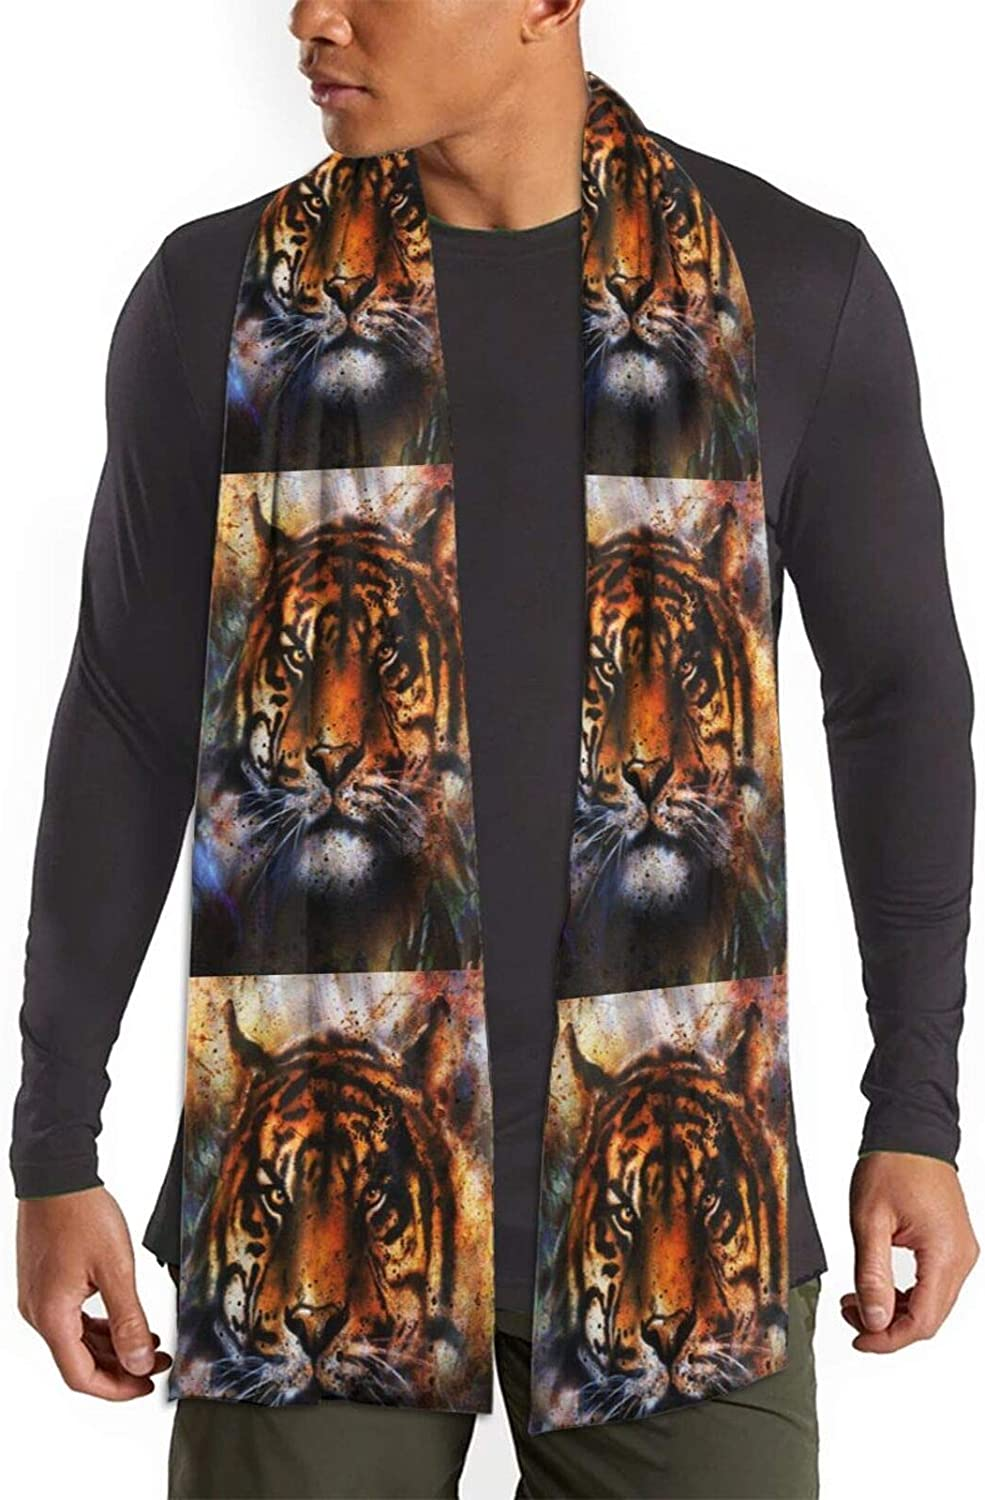 Womens Winter Scarf Portrait Tiger Face Wraps Warm Pashmina Shawls Gift Reversible Soft For Girls